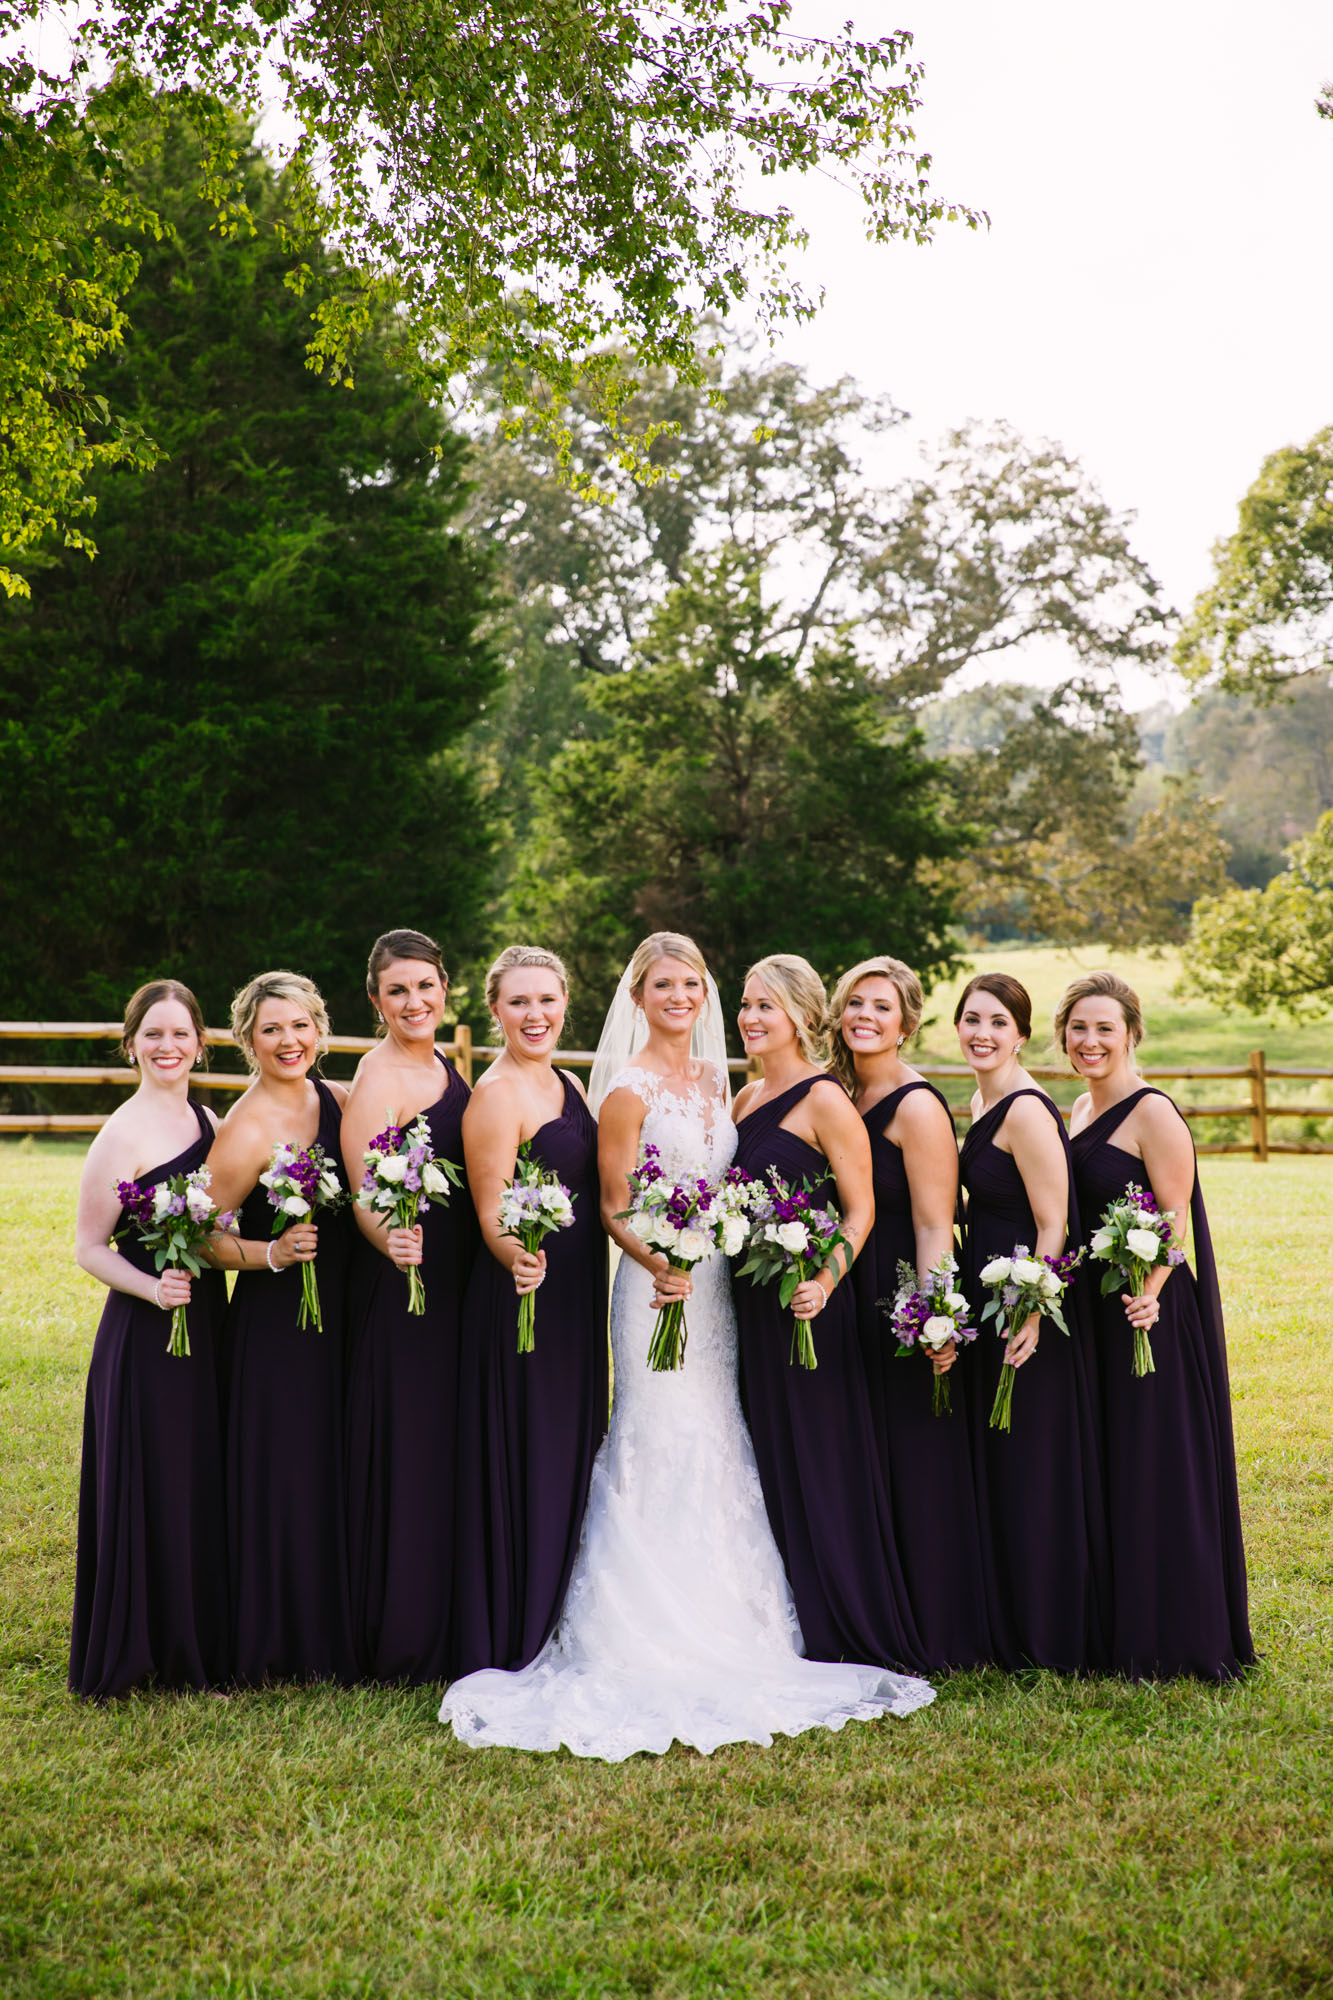 Waynesville, NC Wedding Photography | Bridal Party Laughing